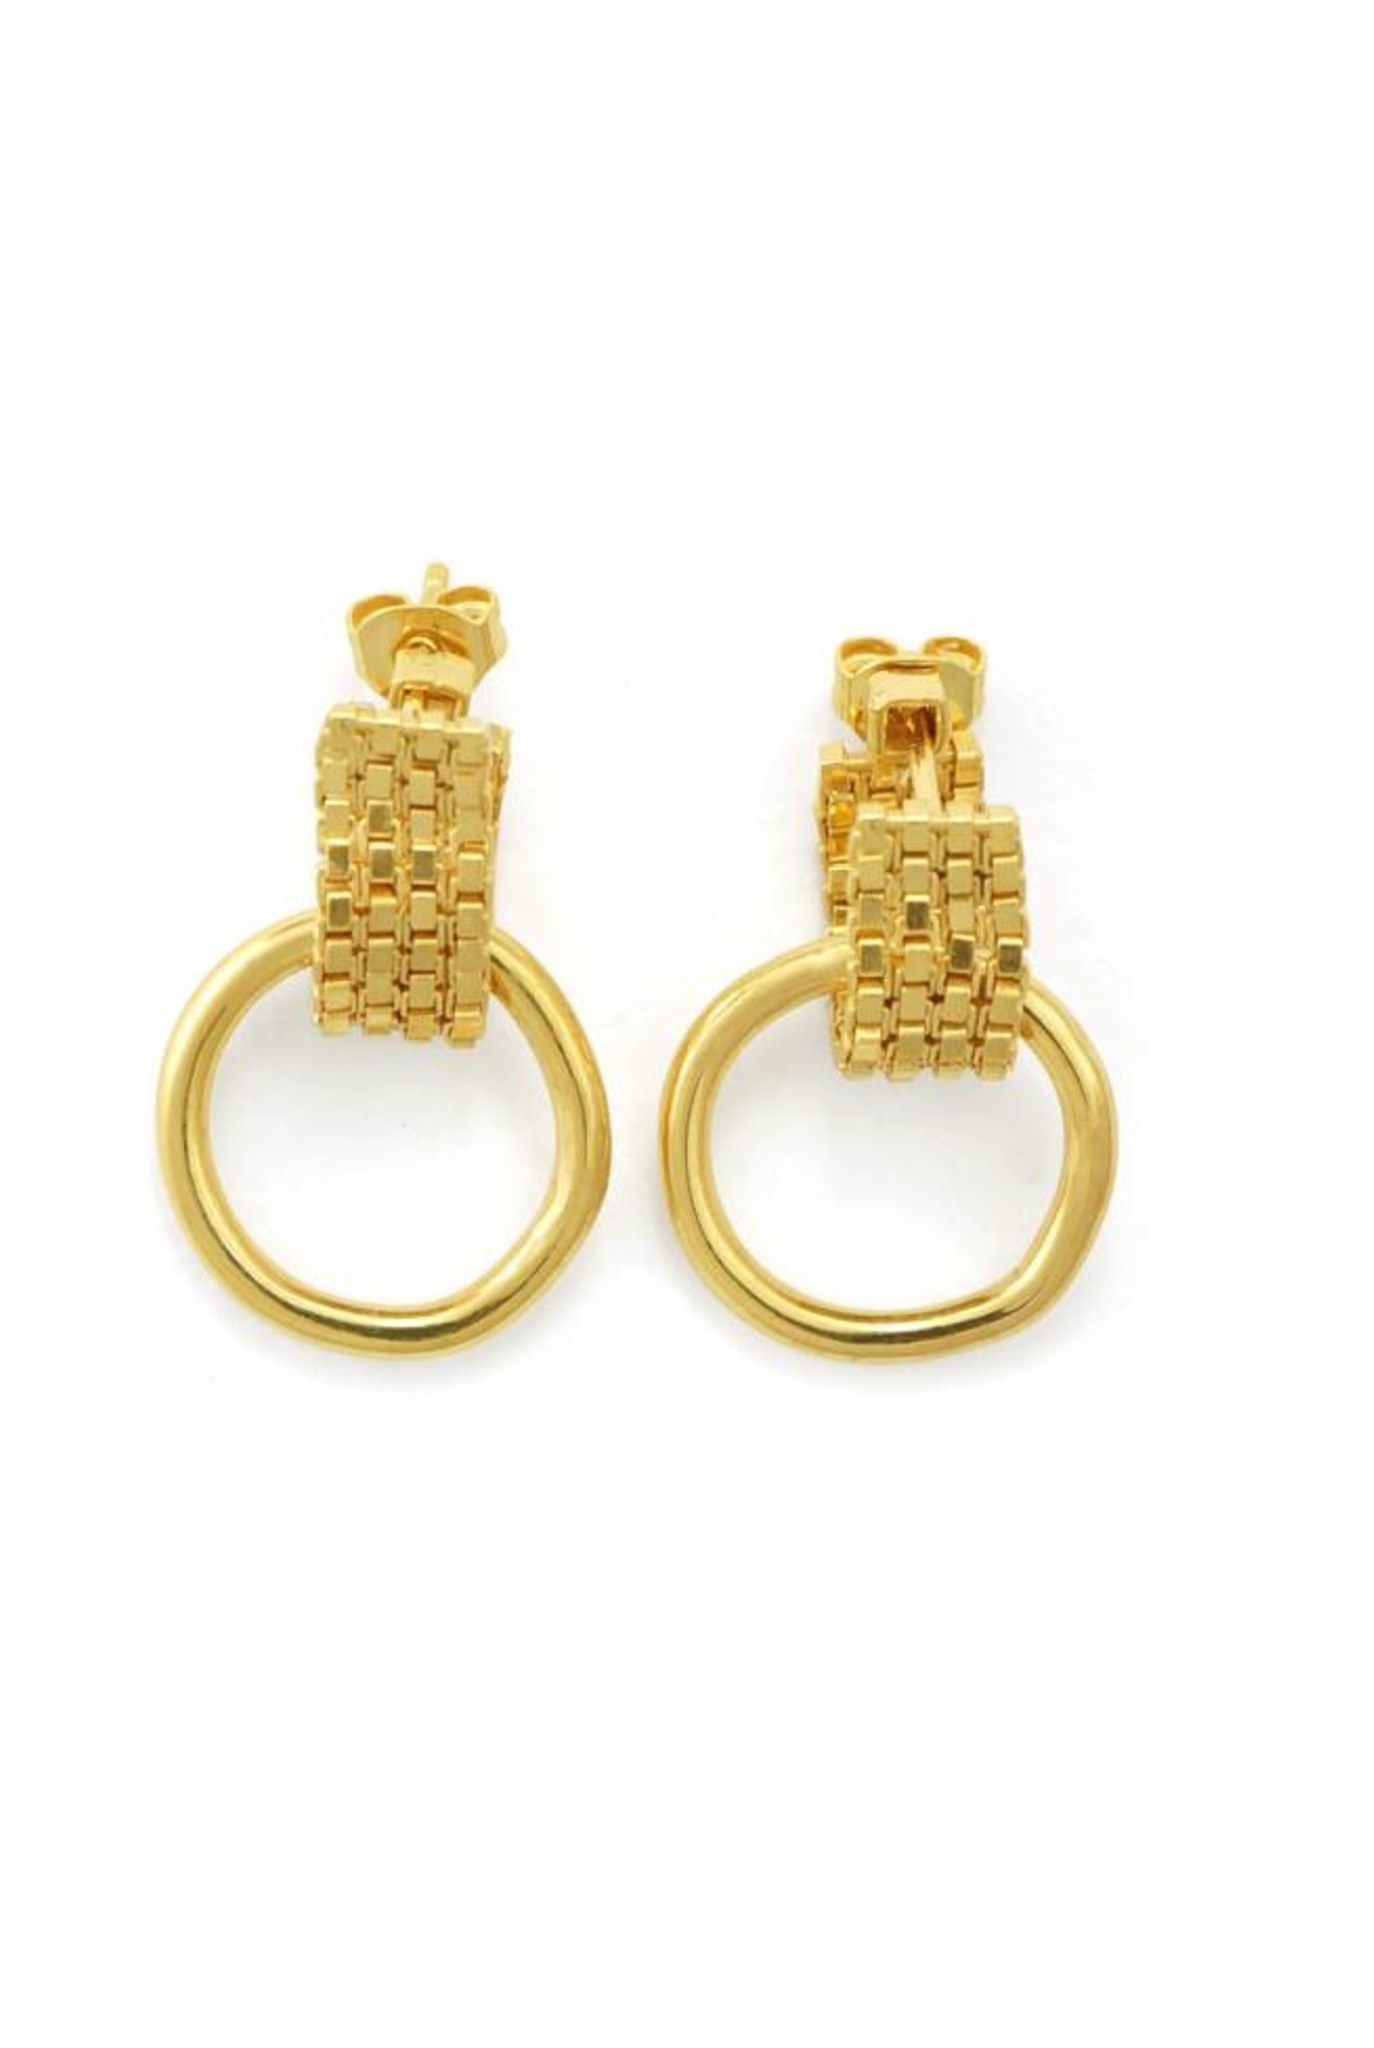 Lux earrings goldplated